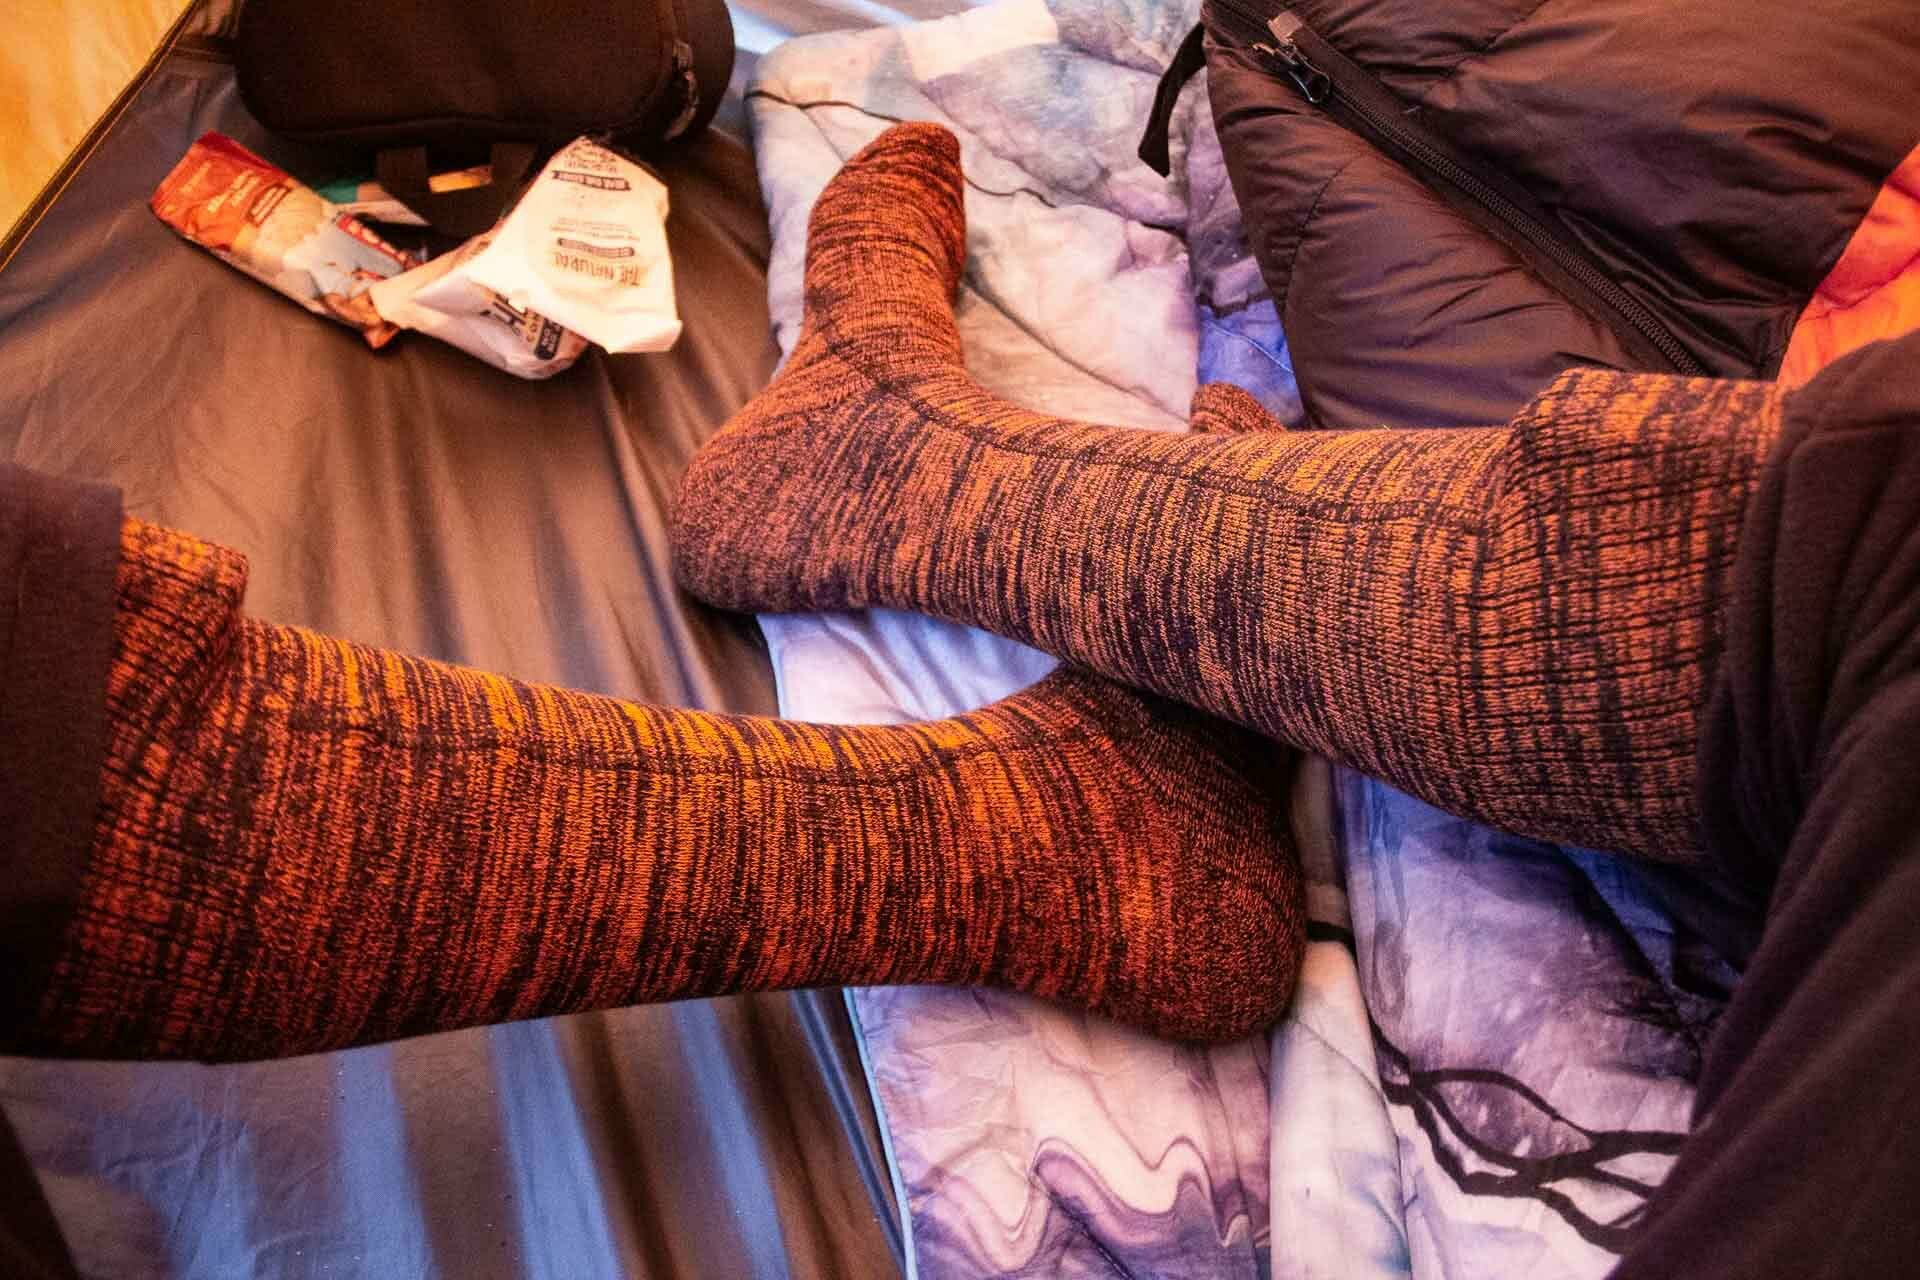 ororo heated socks gear review, photo by tim ashelford, socks, tent, battery, warm